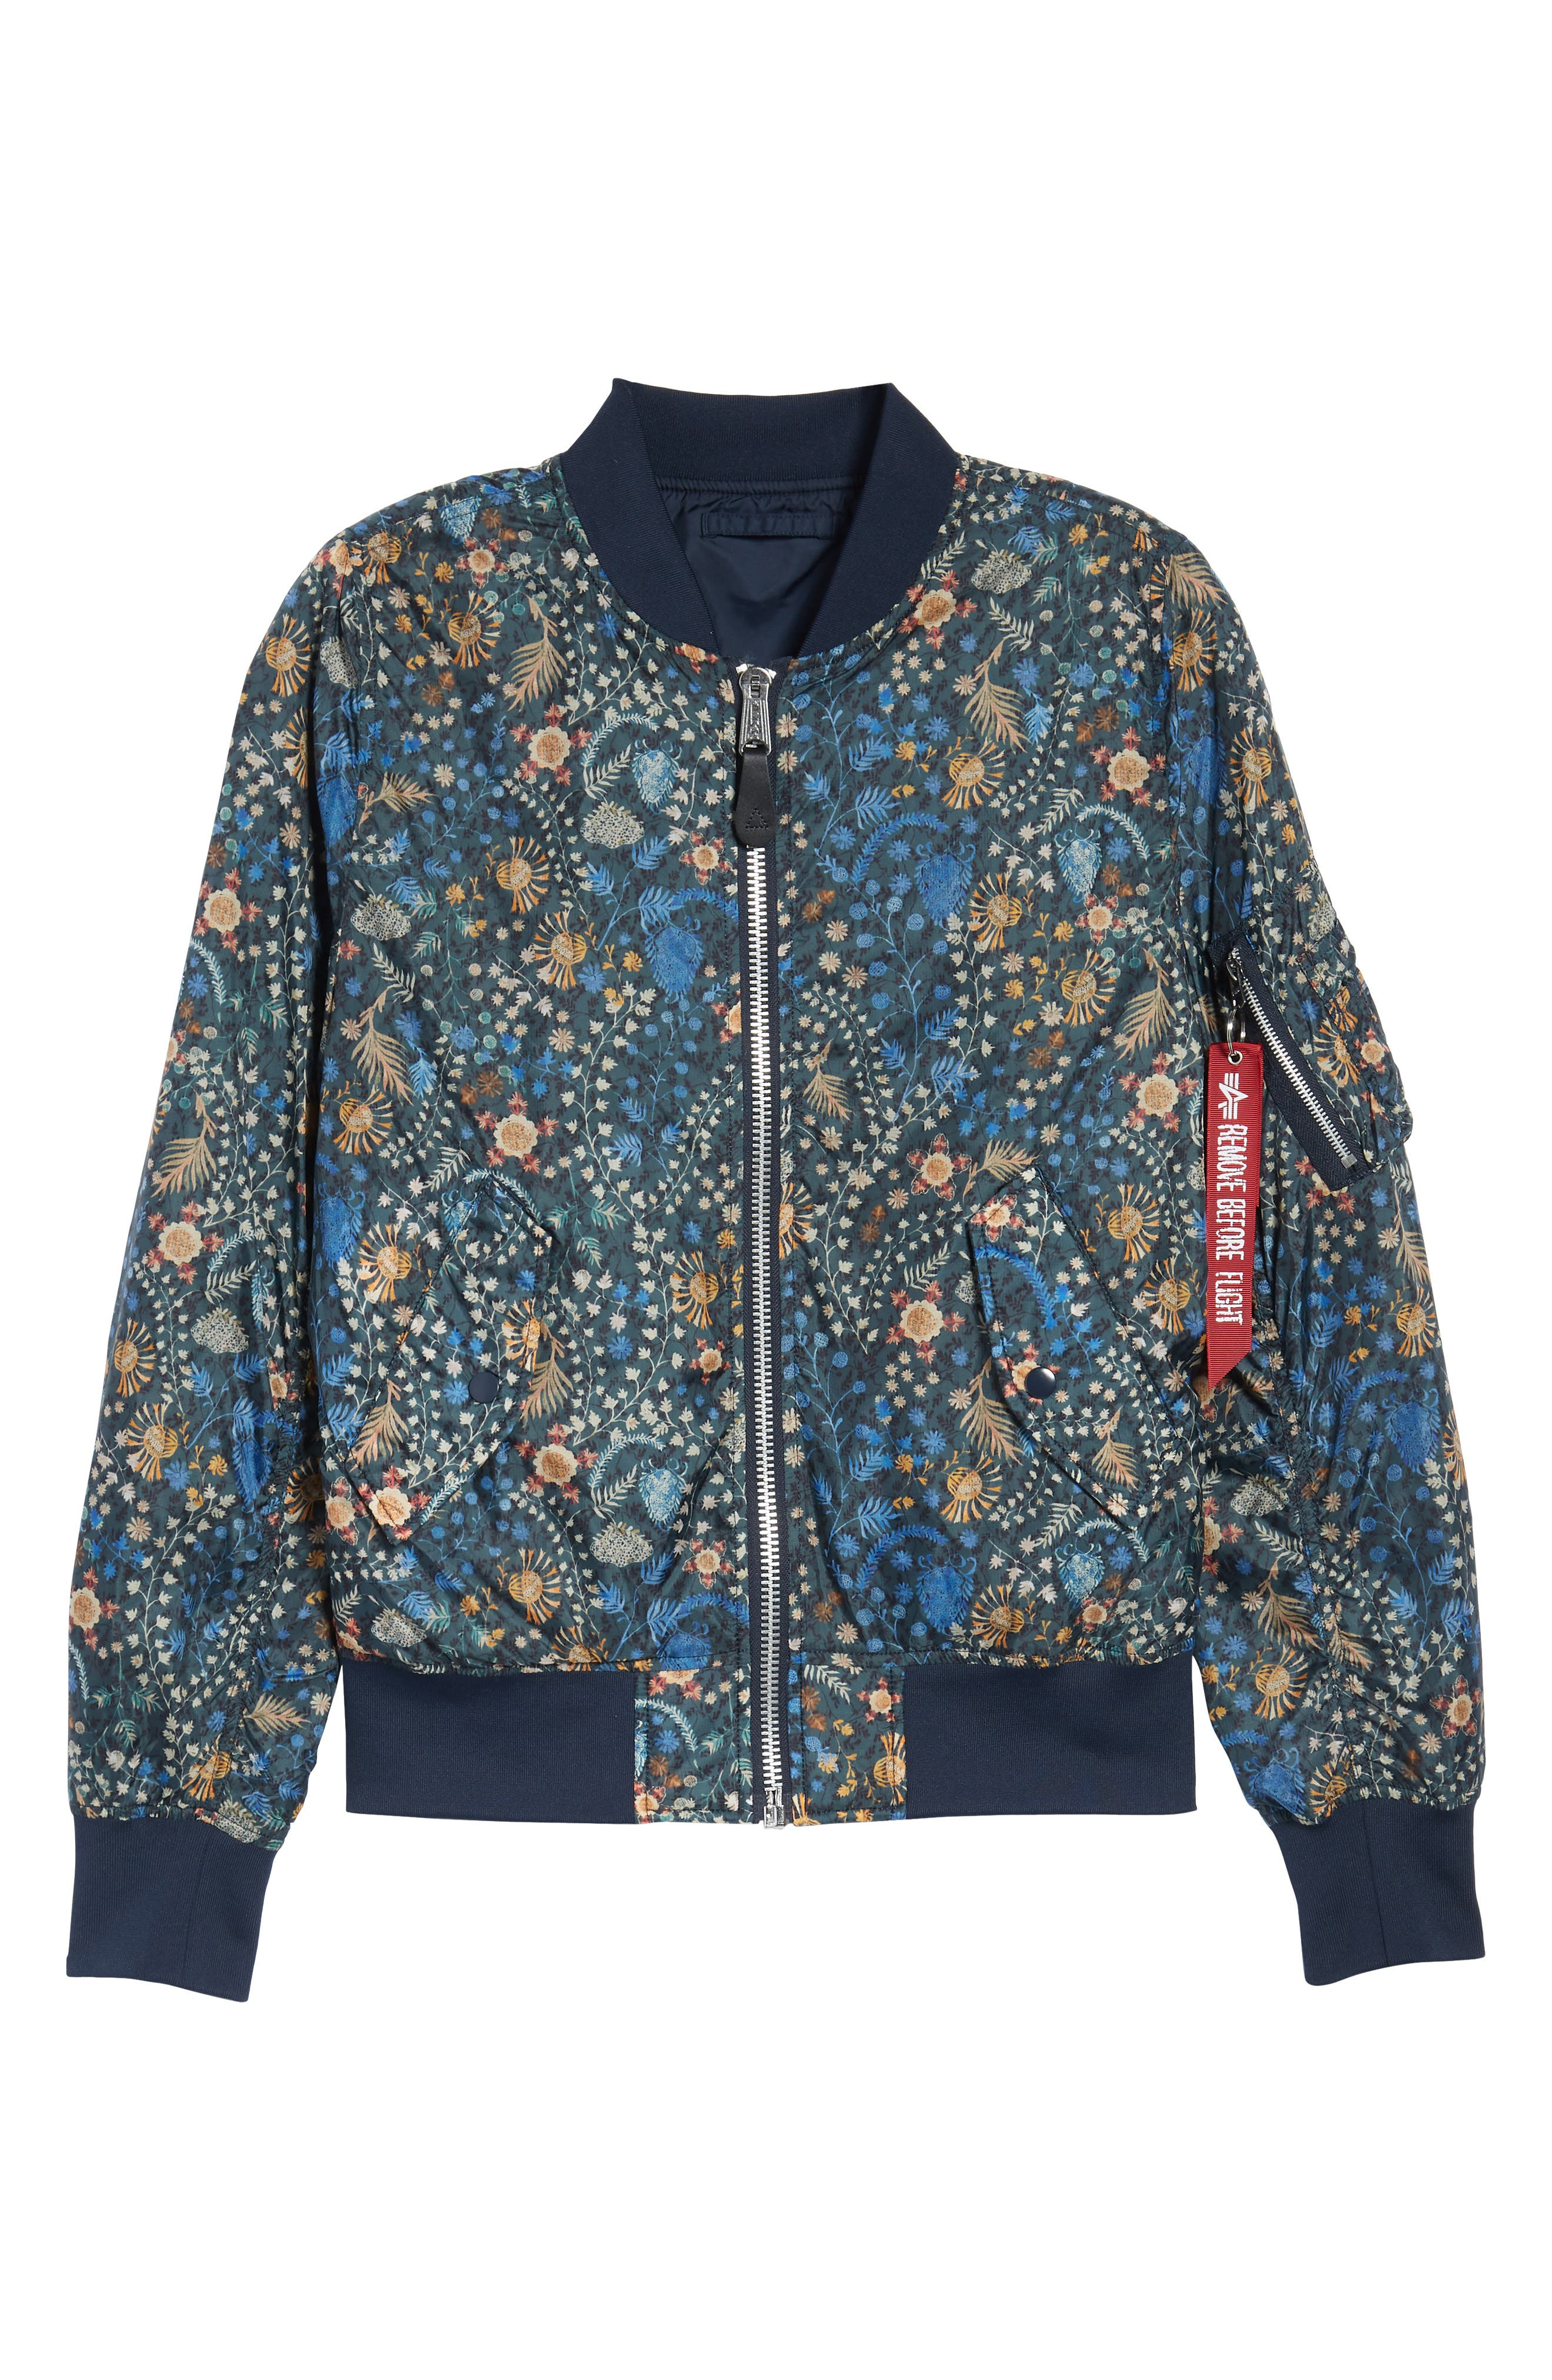 Liberty X L-2B Scout Bomber Jacket,                             Alternate thumbnail 6, color,                             Croquette Meadow